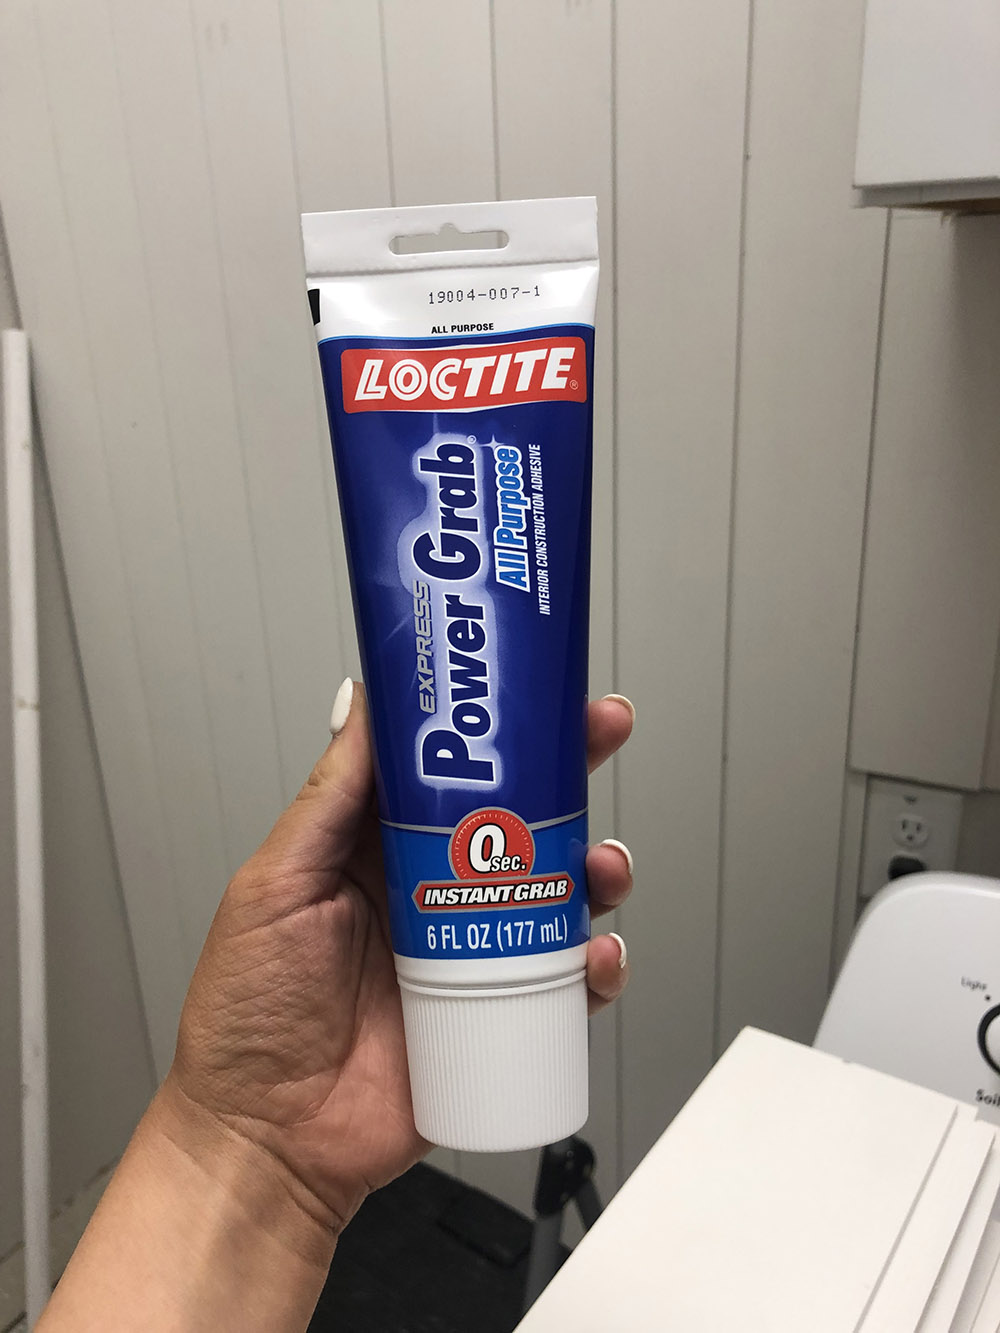 A person holding a tube of Loctite power grab.